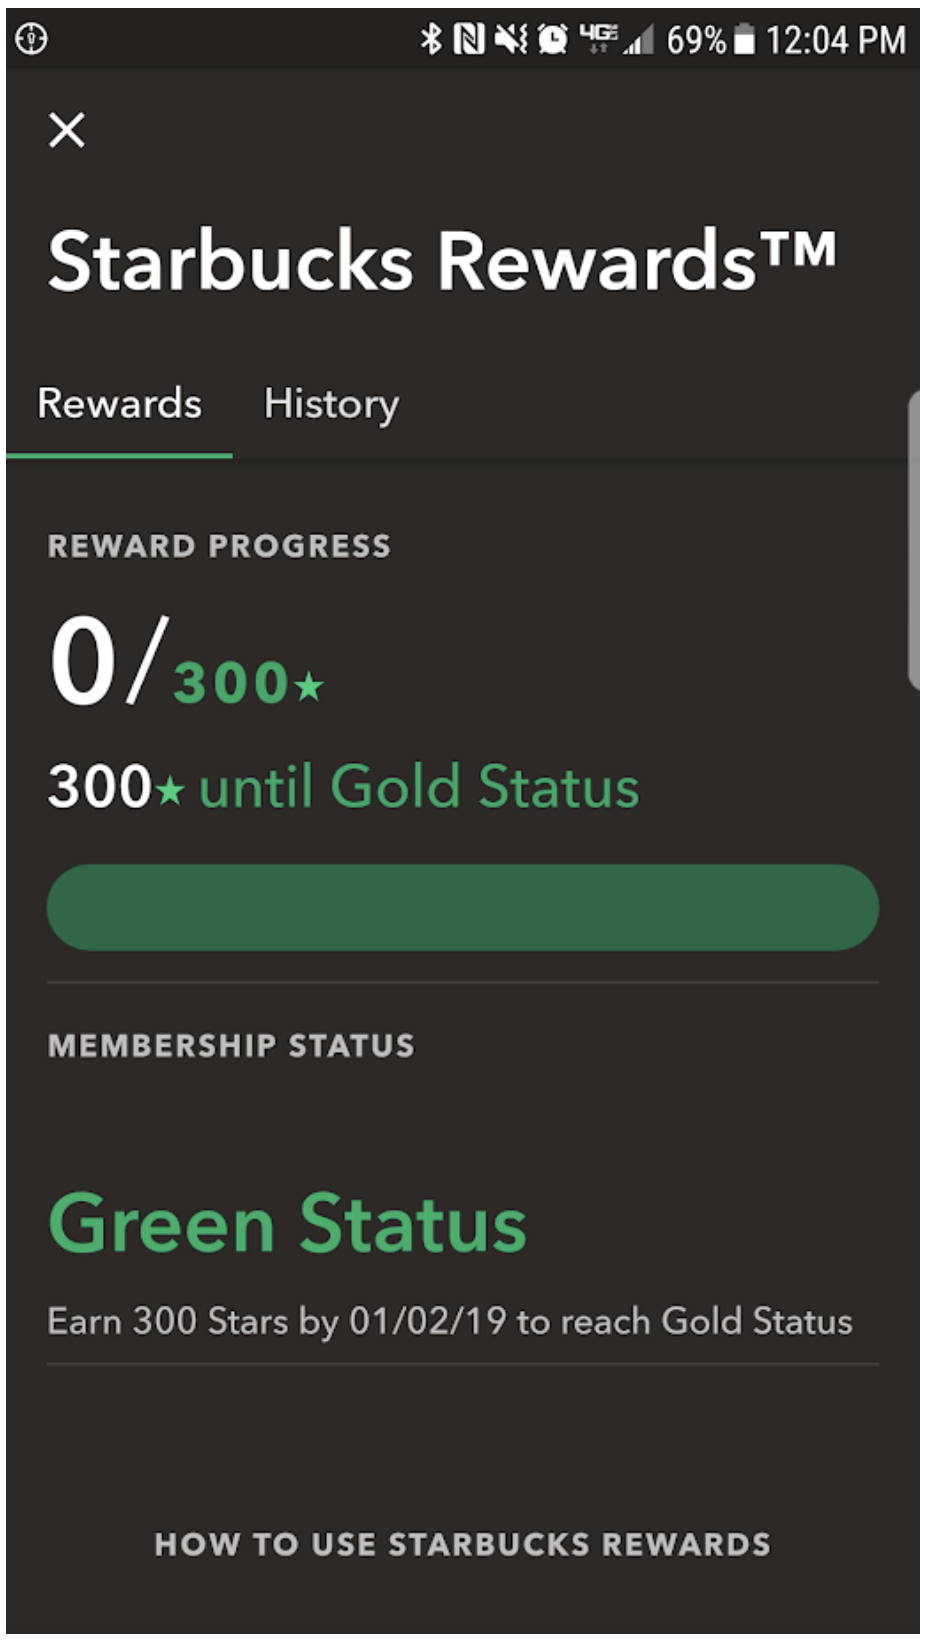 starbucks rewards loyalty program example | manychat